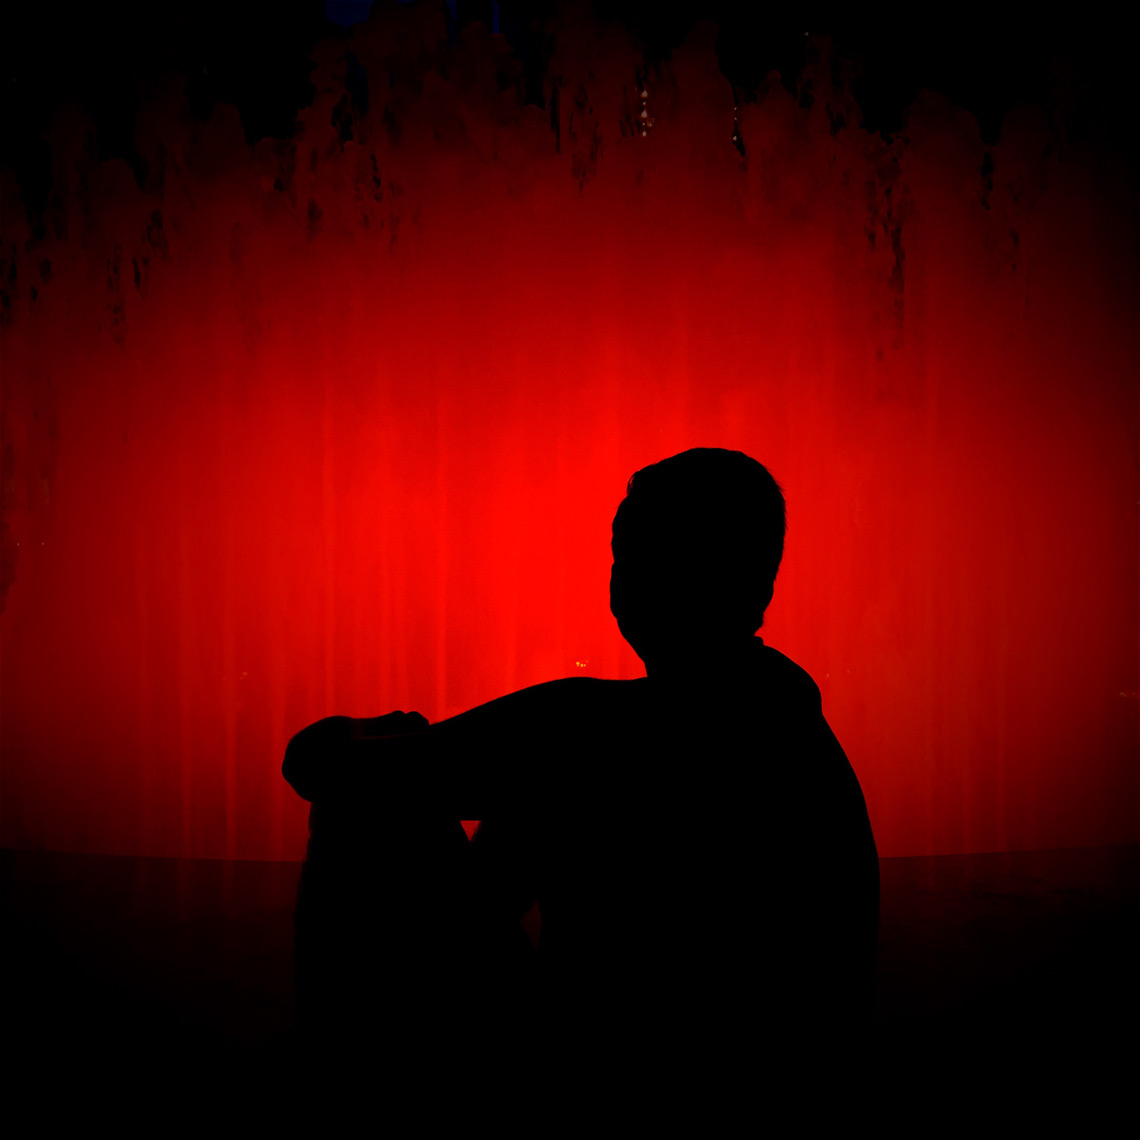 Silhouette_in_Red